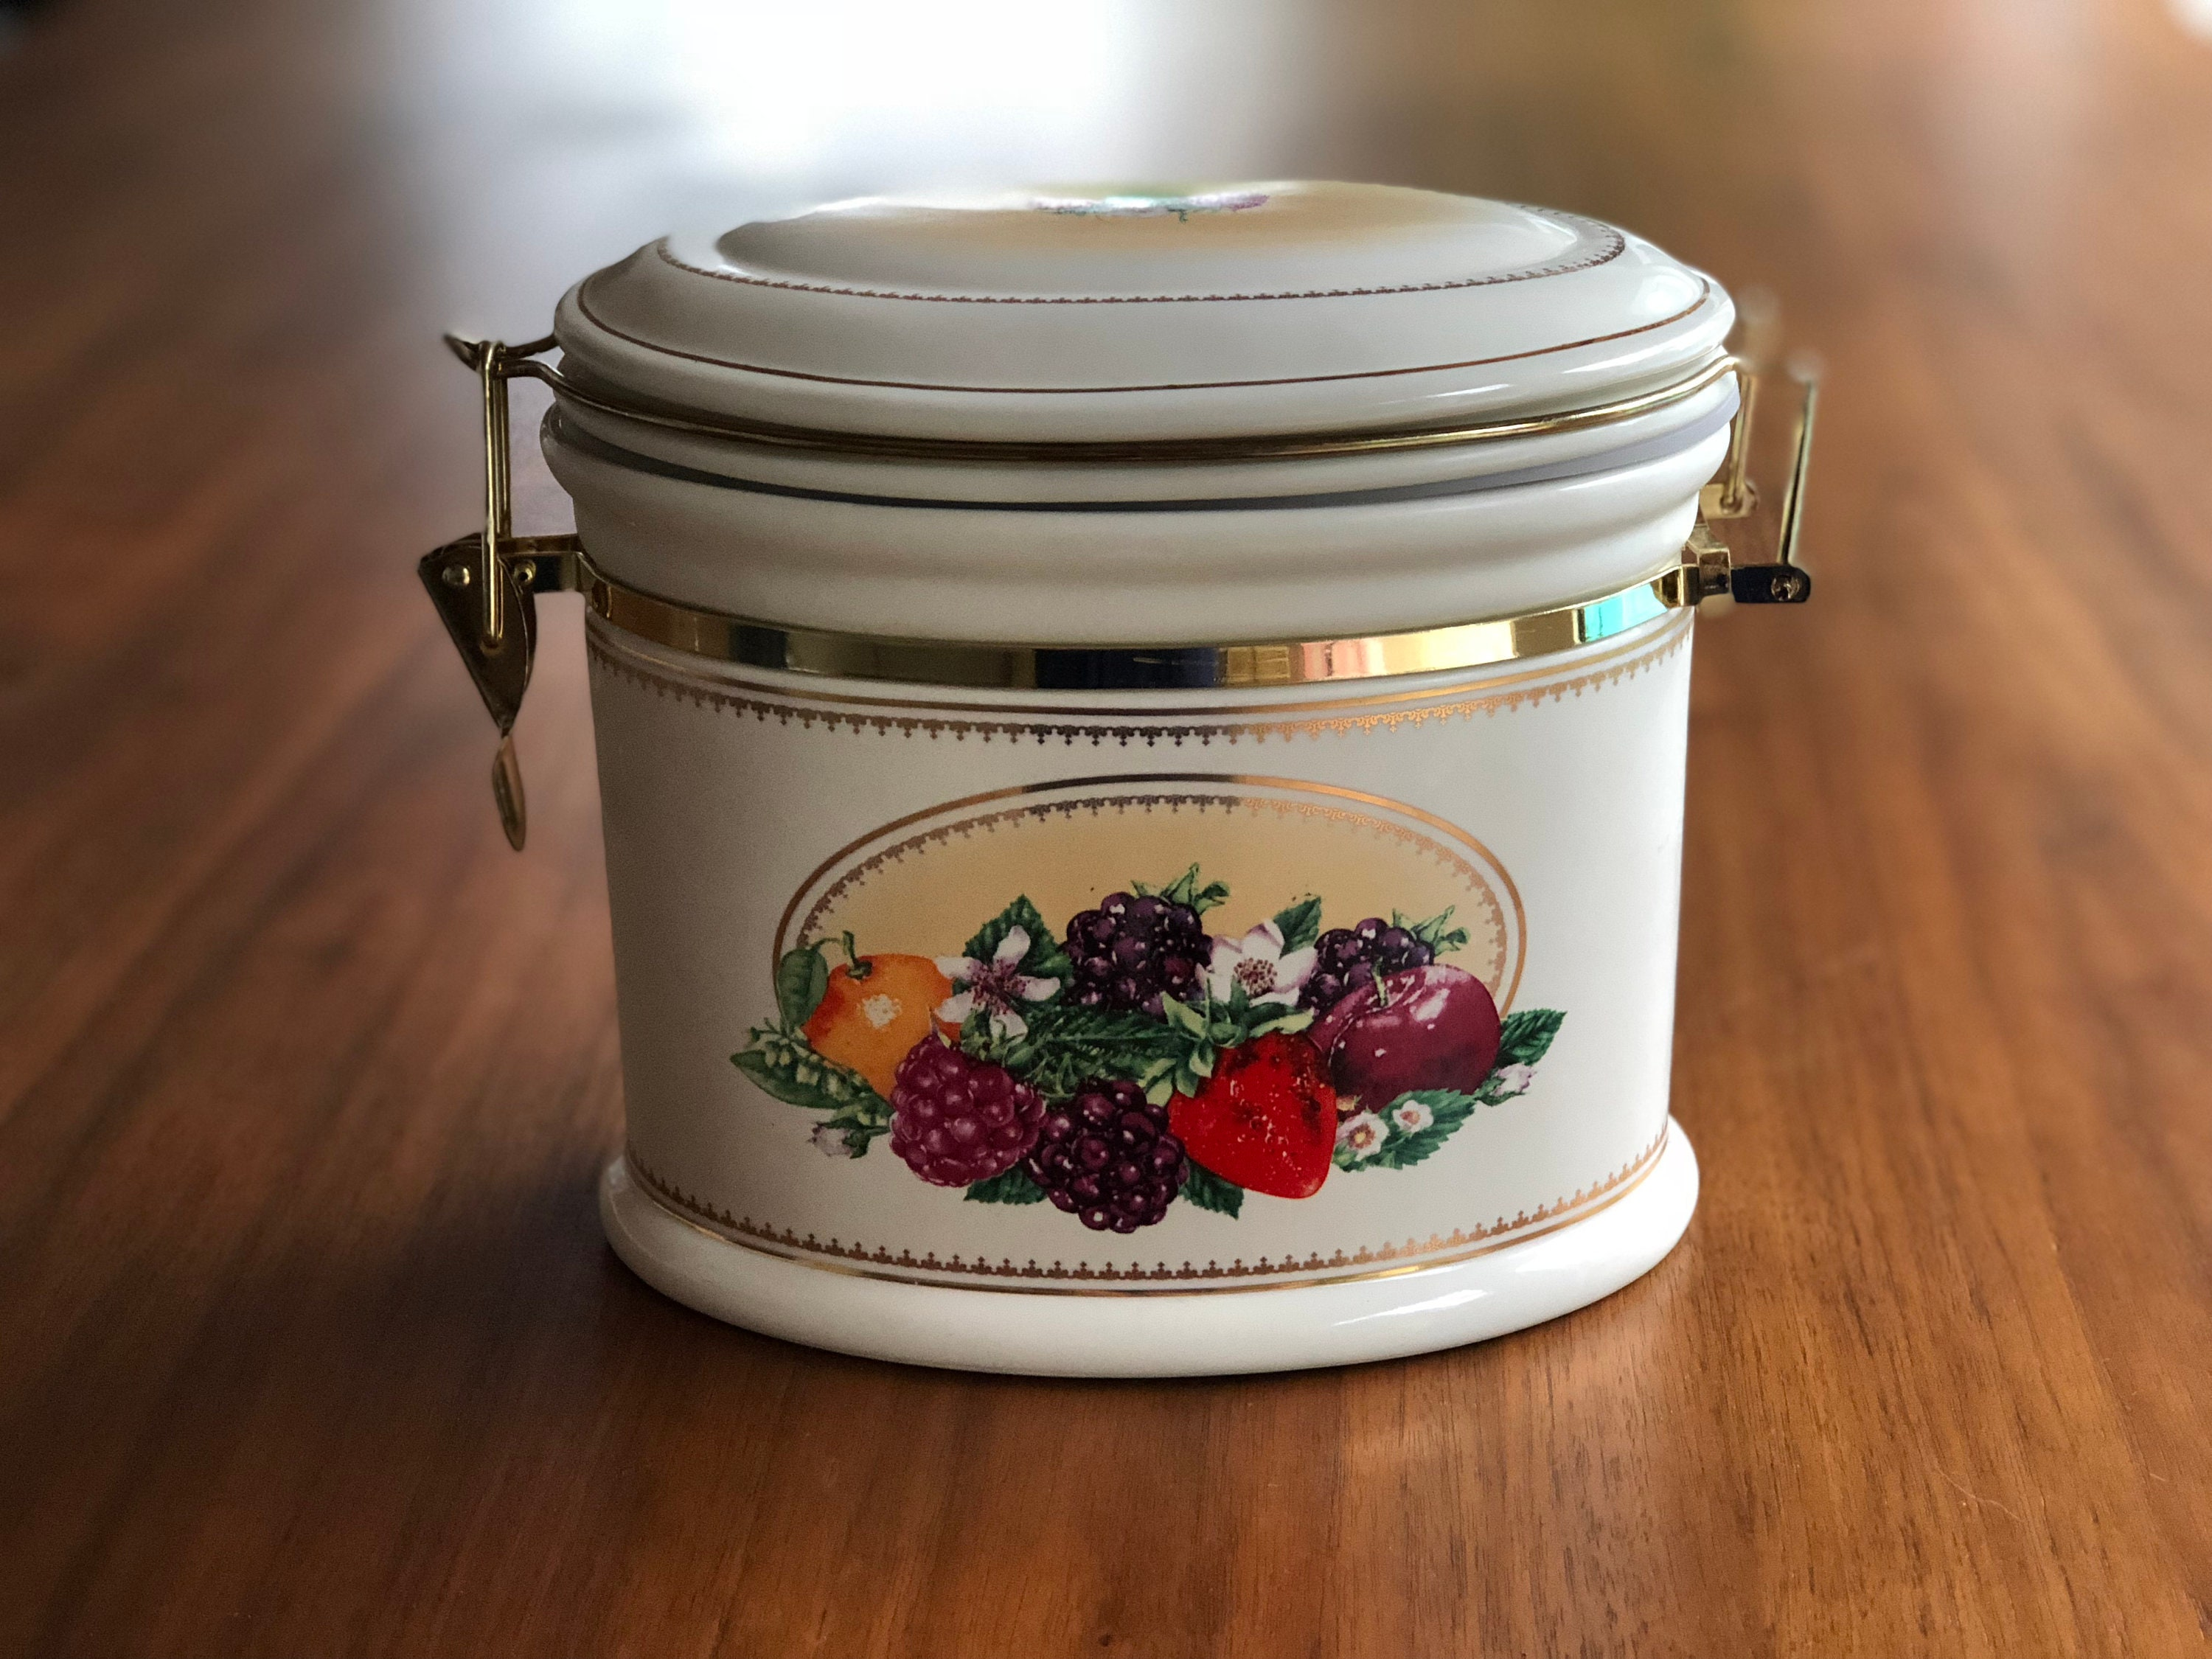 Knott/'s Berry Farms Canister Ceramic Storage Jar Raspberry On Top Pattern Vintage Cookie Jar Fruits and Berries Decor